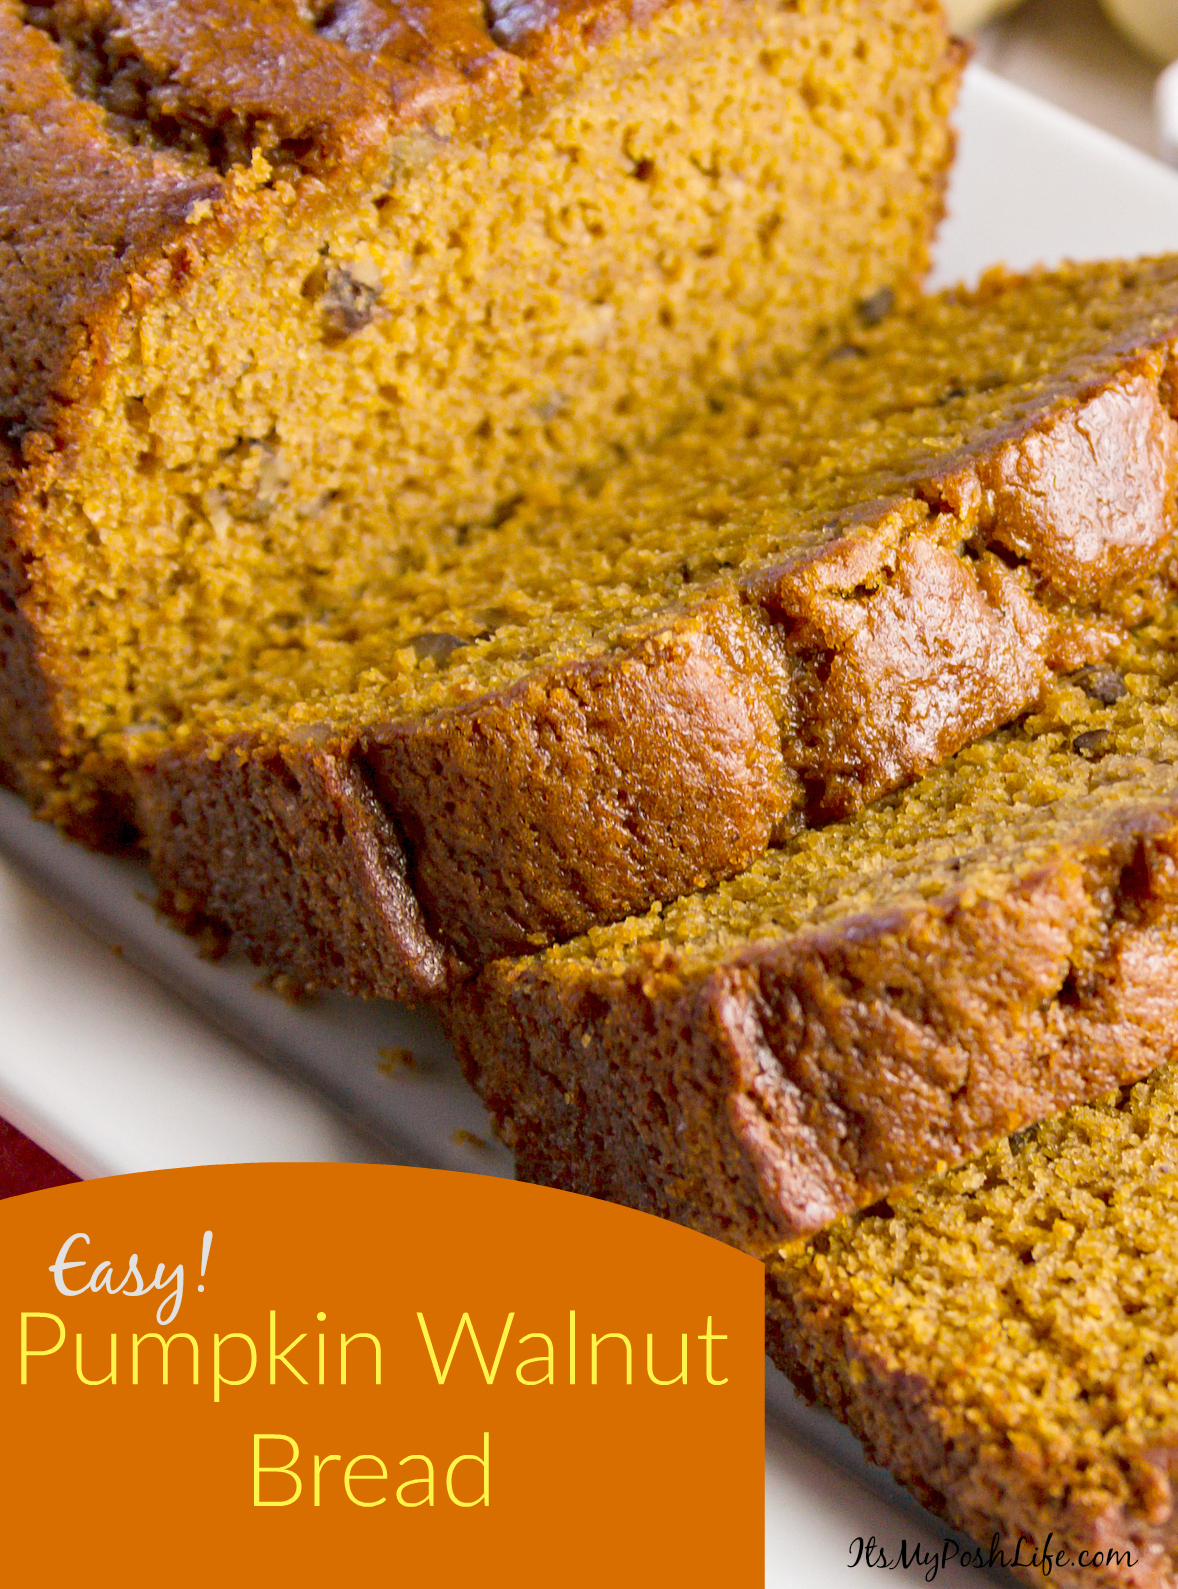 Easy Pumpkin Walnut Bread